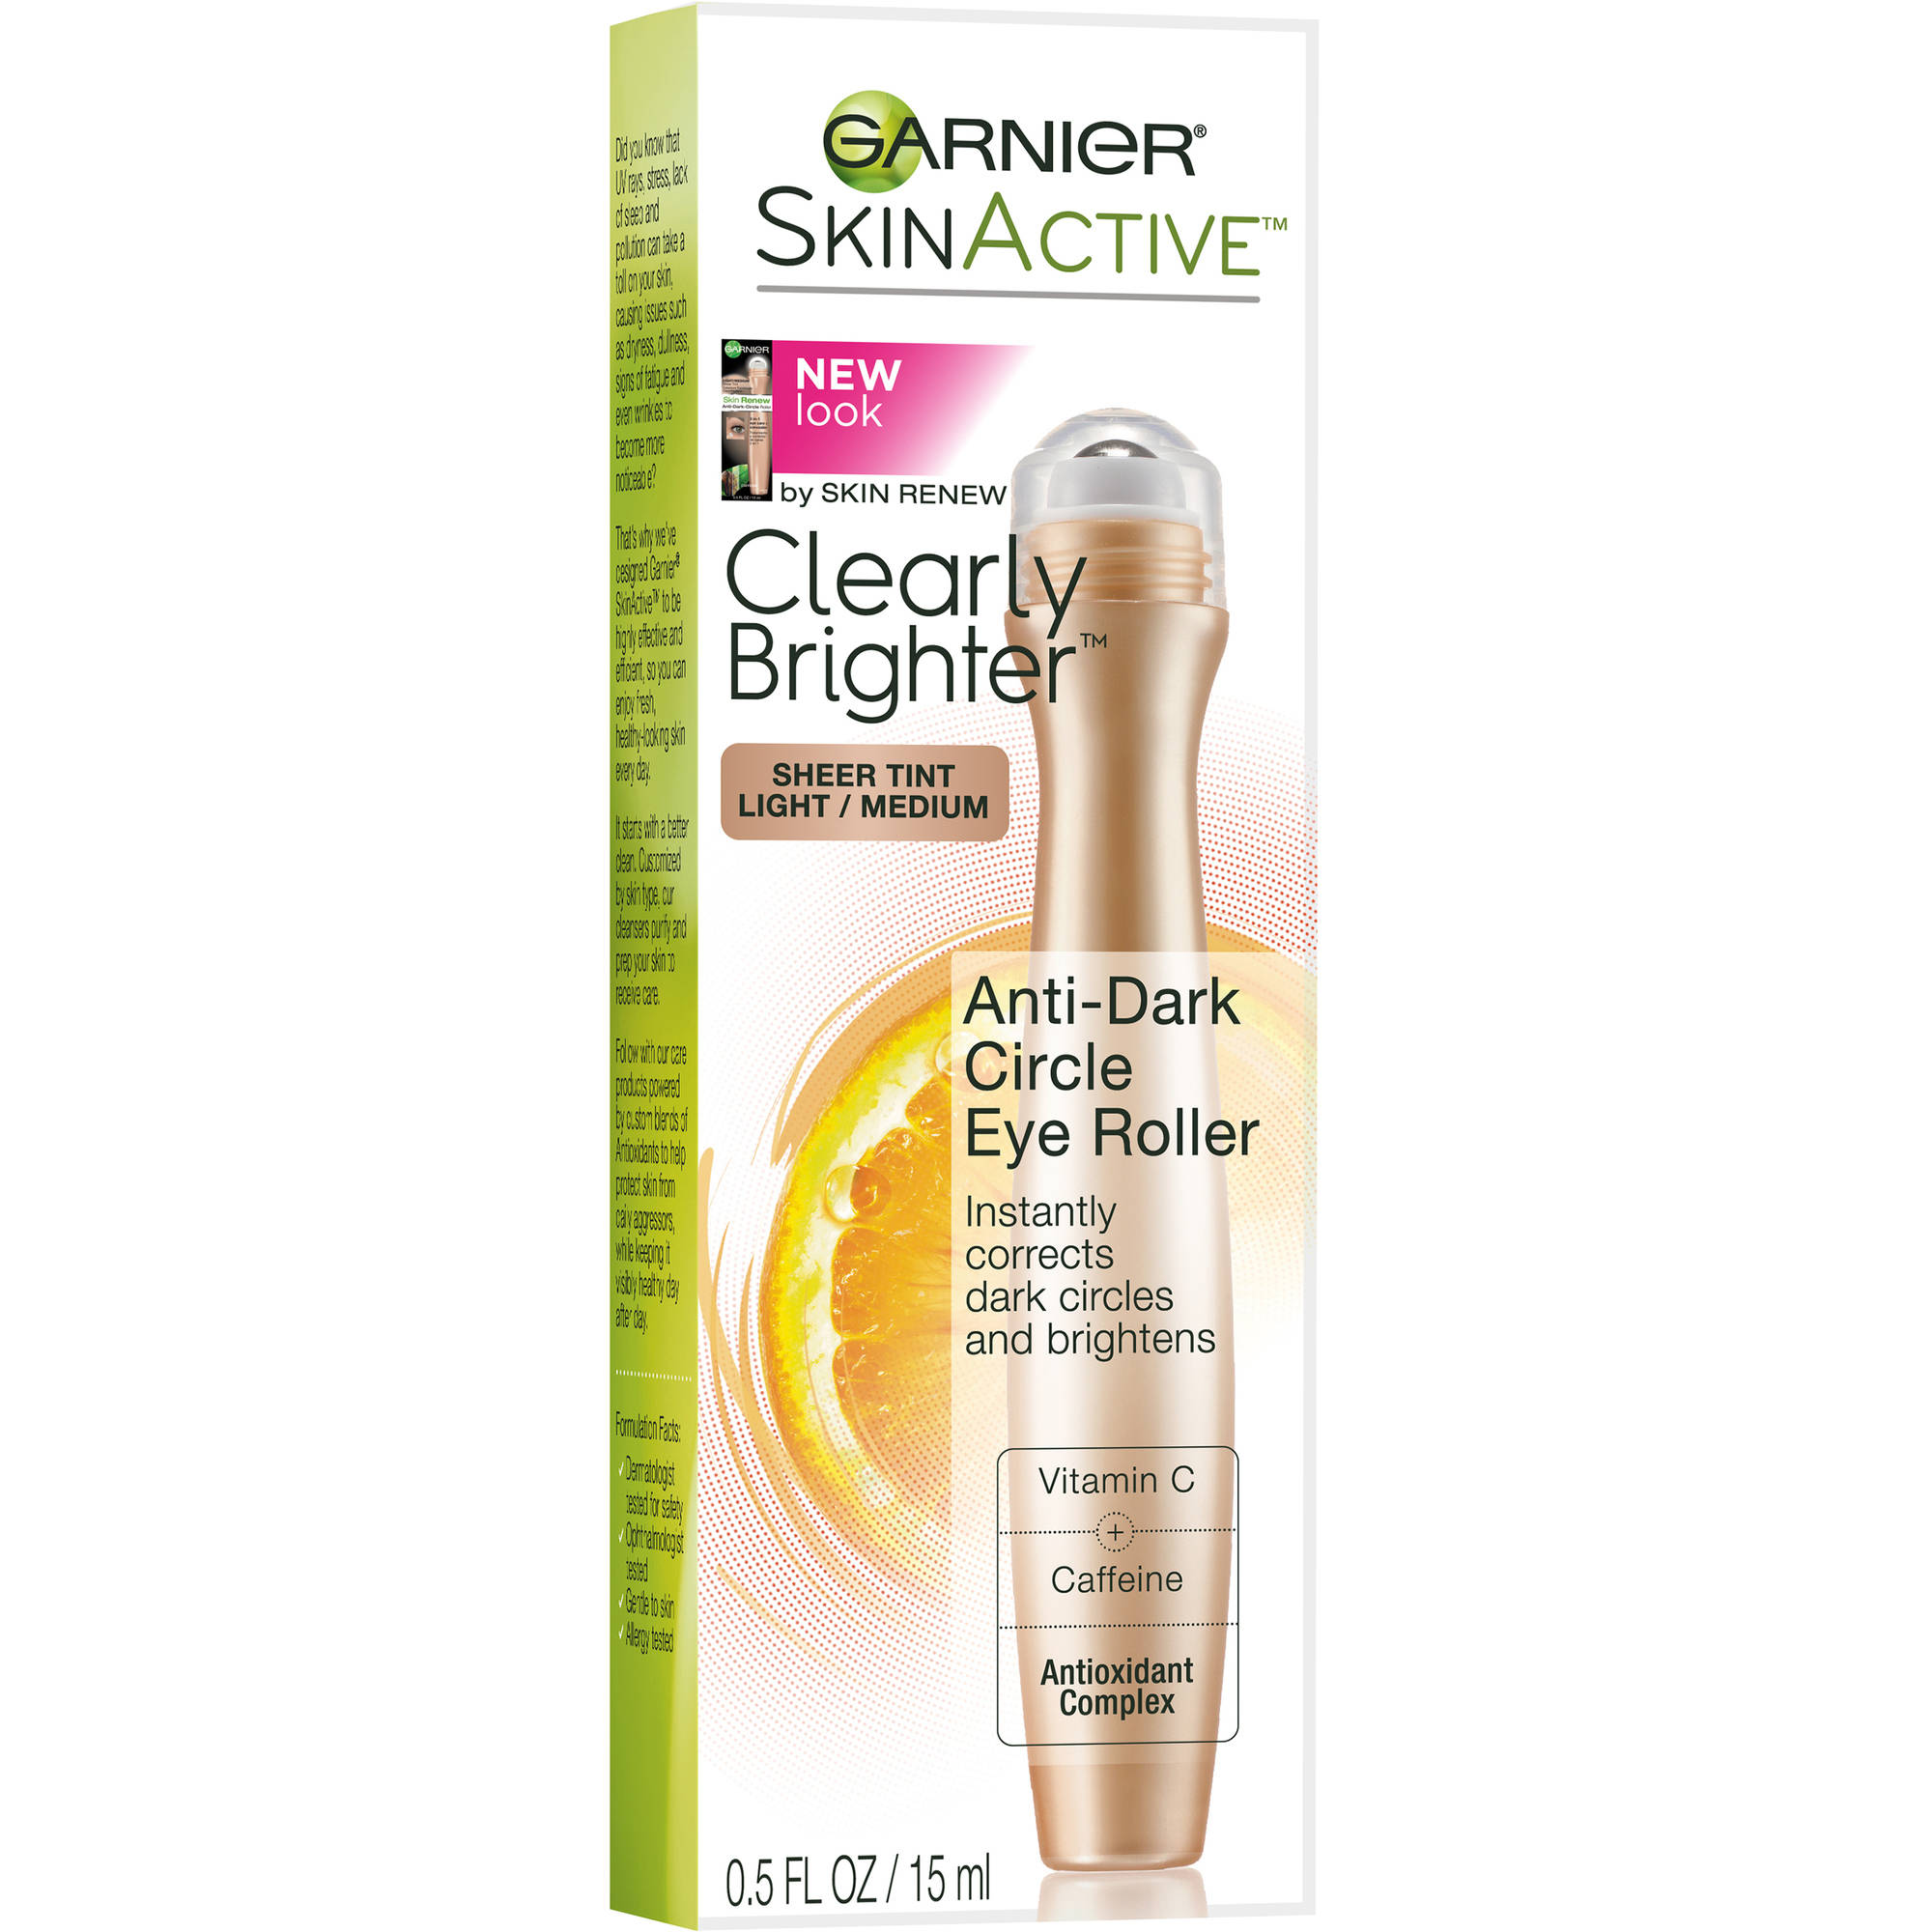 Garnier SkinActive Clearly Brighter Anti-Dark Circle Eye Roller, Light/Medium, 0.5 fl oz